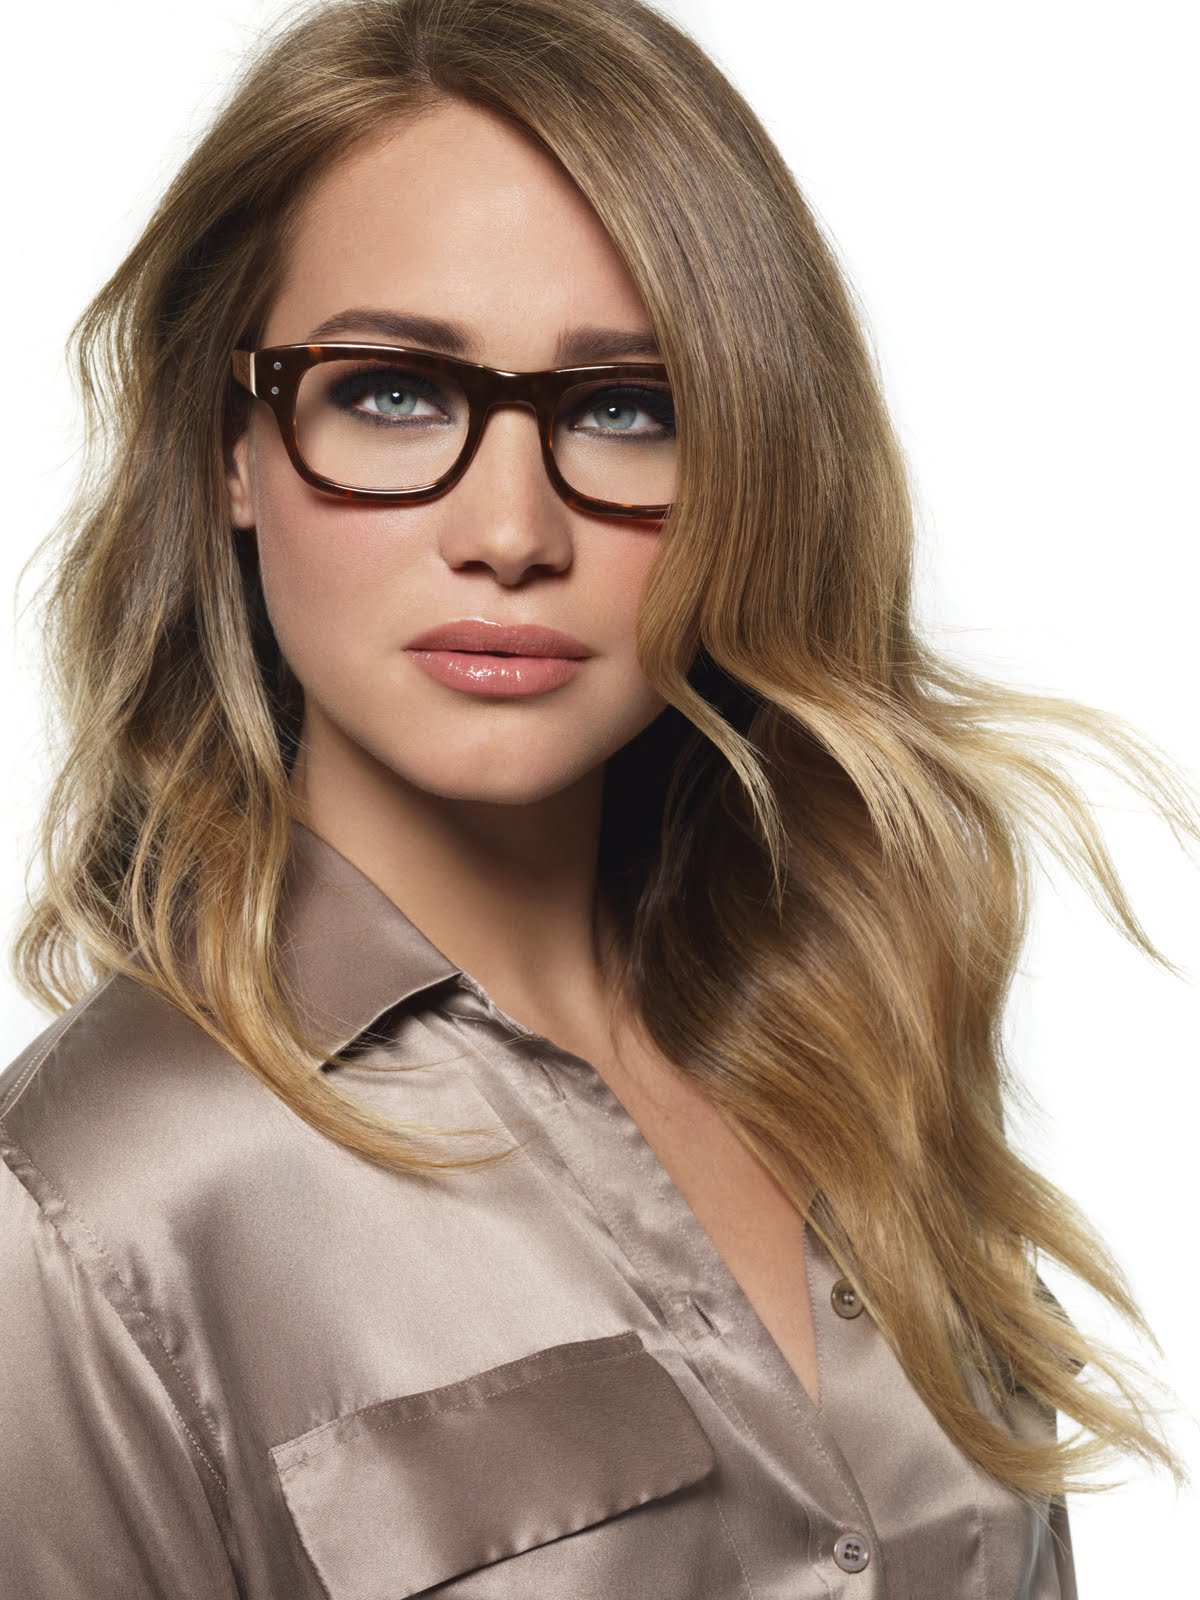 10 essential makeup tips for girls with glasses — Project Vanity